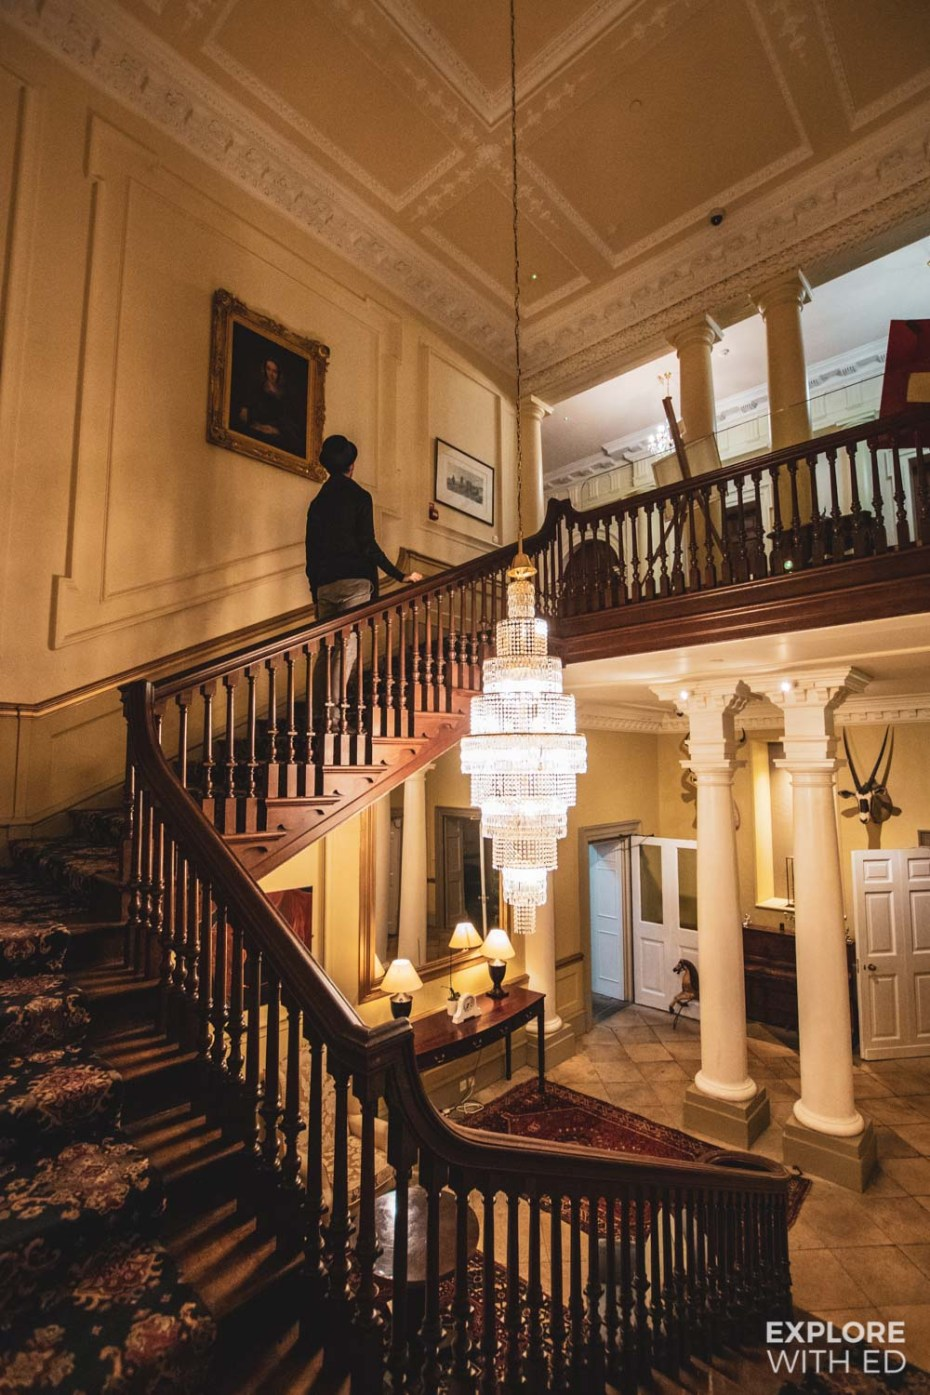 The grand staircase in Nanteos Mansion